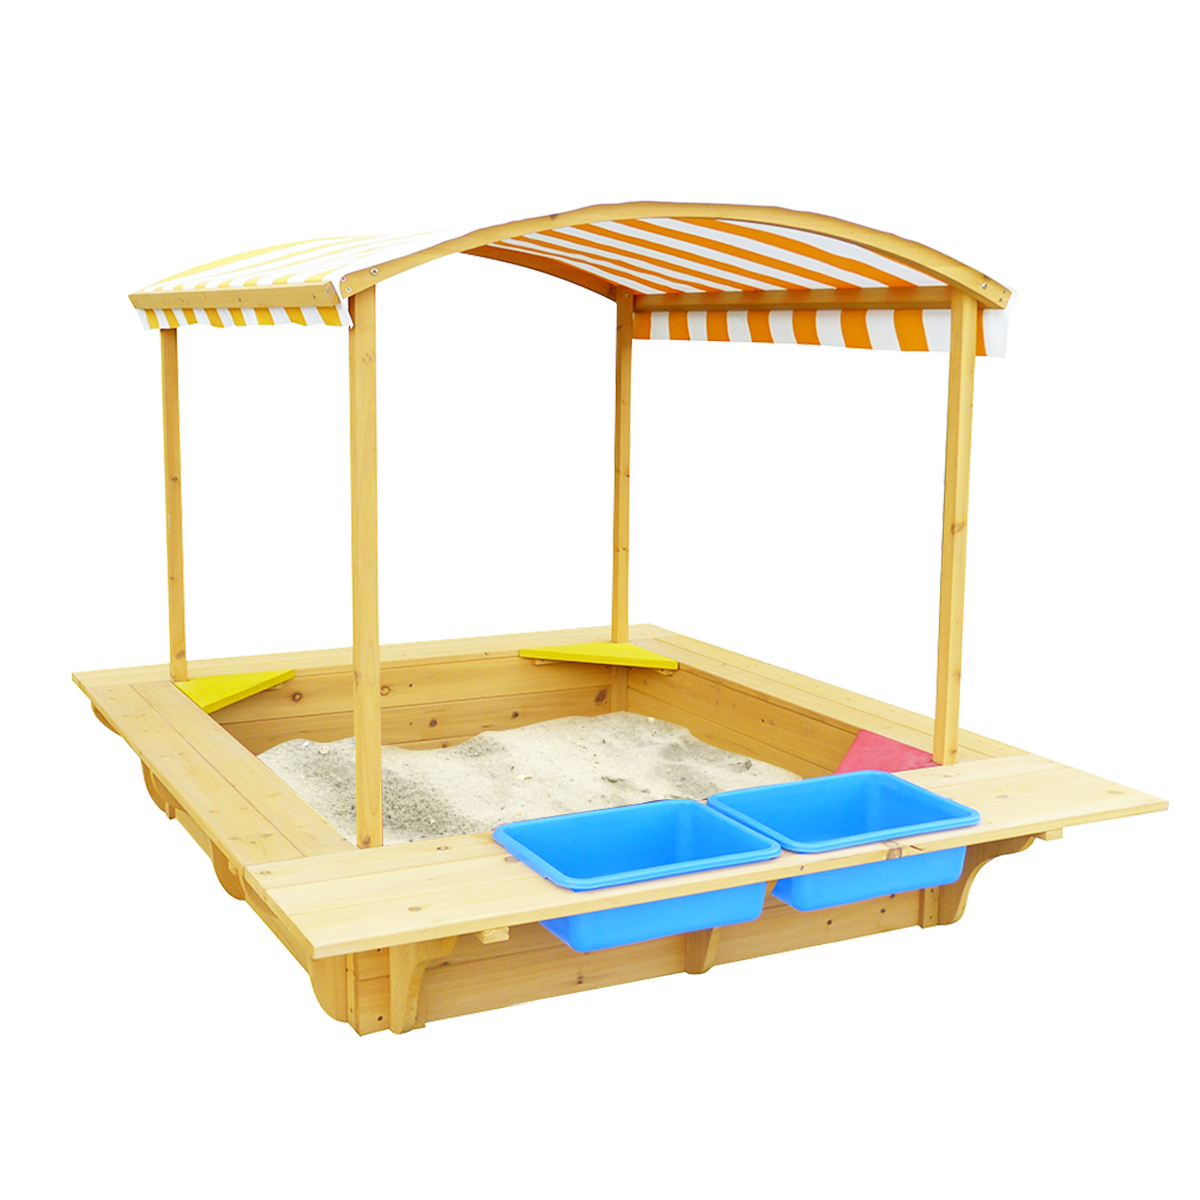 Playfort Large Sandpit With Canopy Free Perth Mandurah